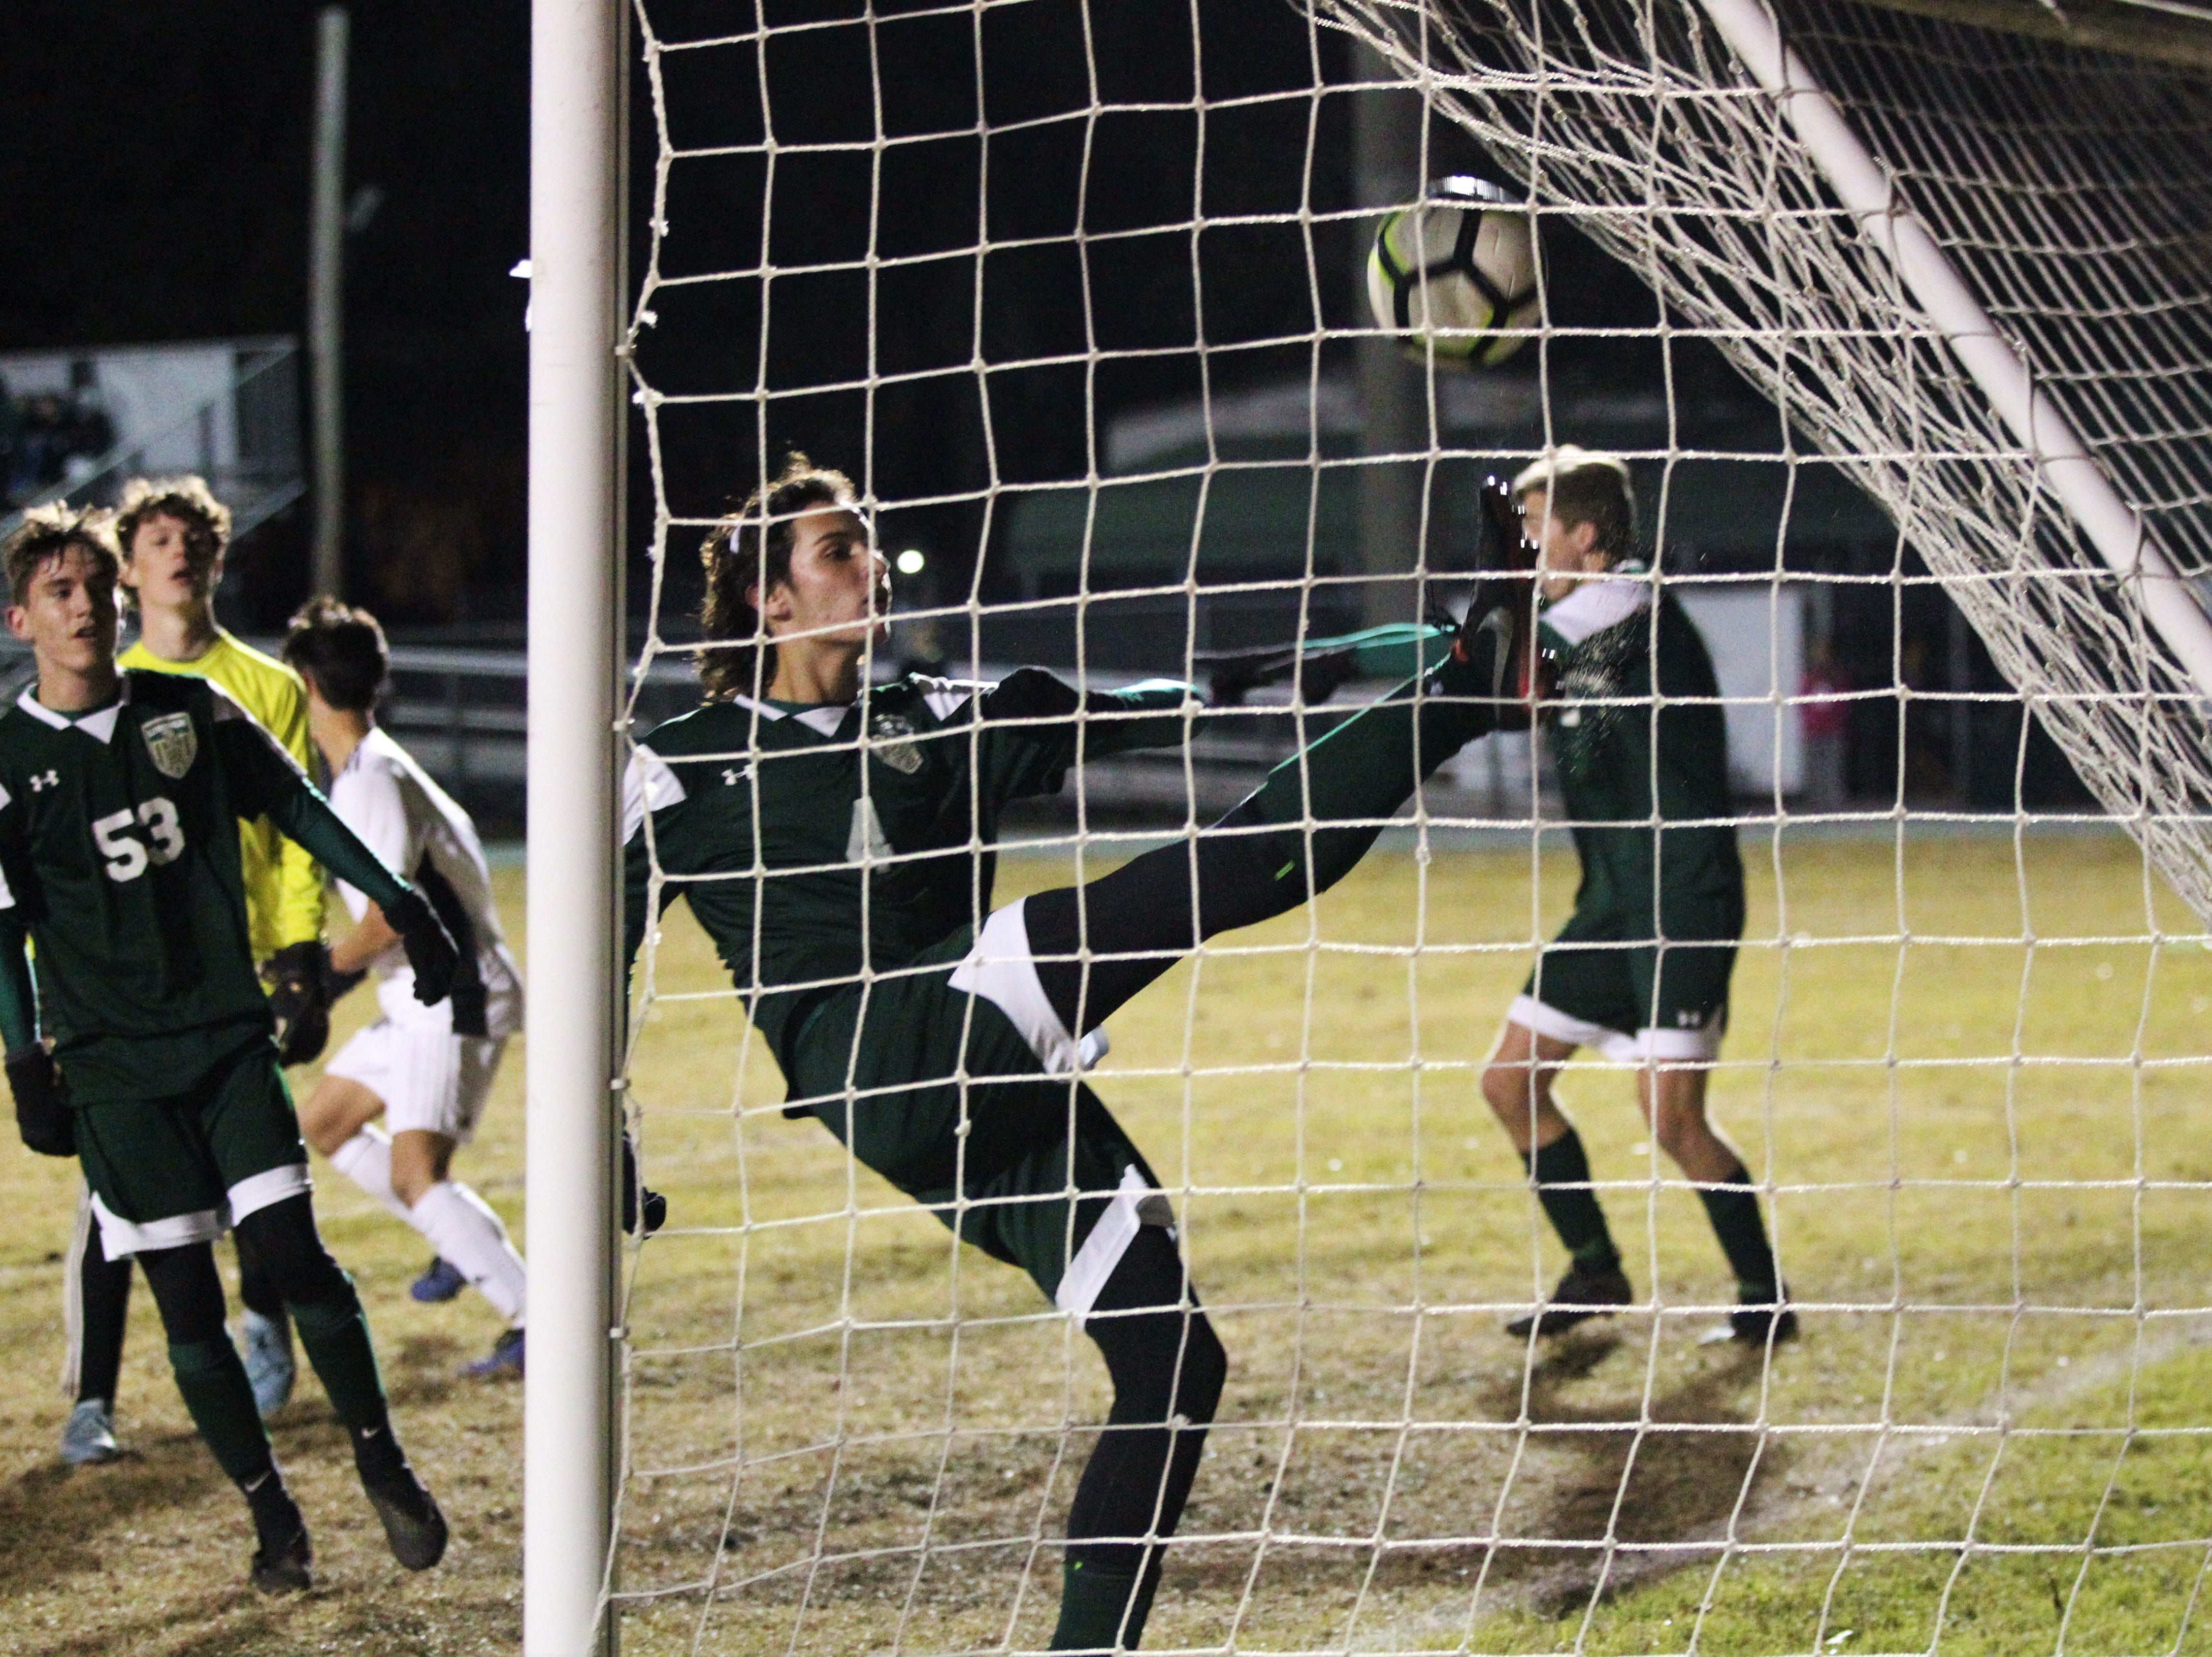 A throw-in from Chiles' Noah Allum turned into a header goal by Will Johnson as Chiles' boys soccer team beat Lincoln 1-0 in a District 2-4A semifinal on Jan. 30, 2019.